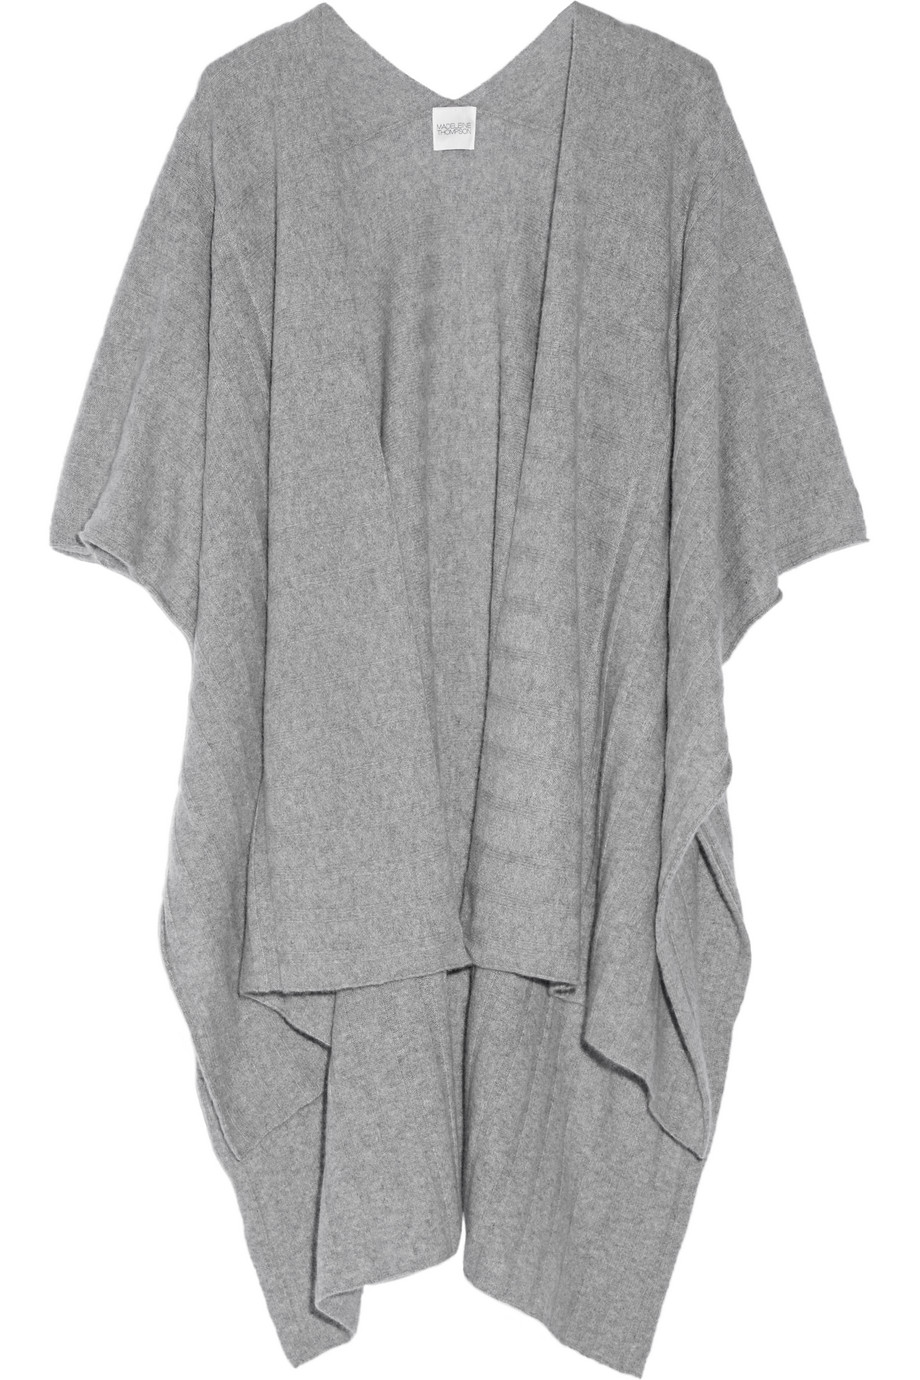 Ribbed Cashmere Wrap, Madeleine Thompson, Light Gray, Women's